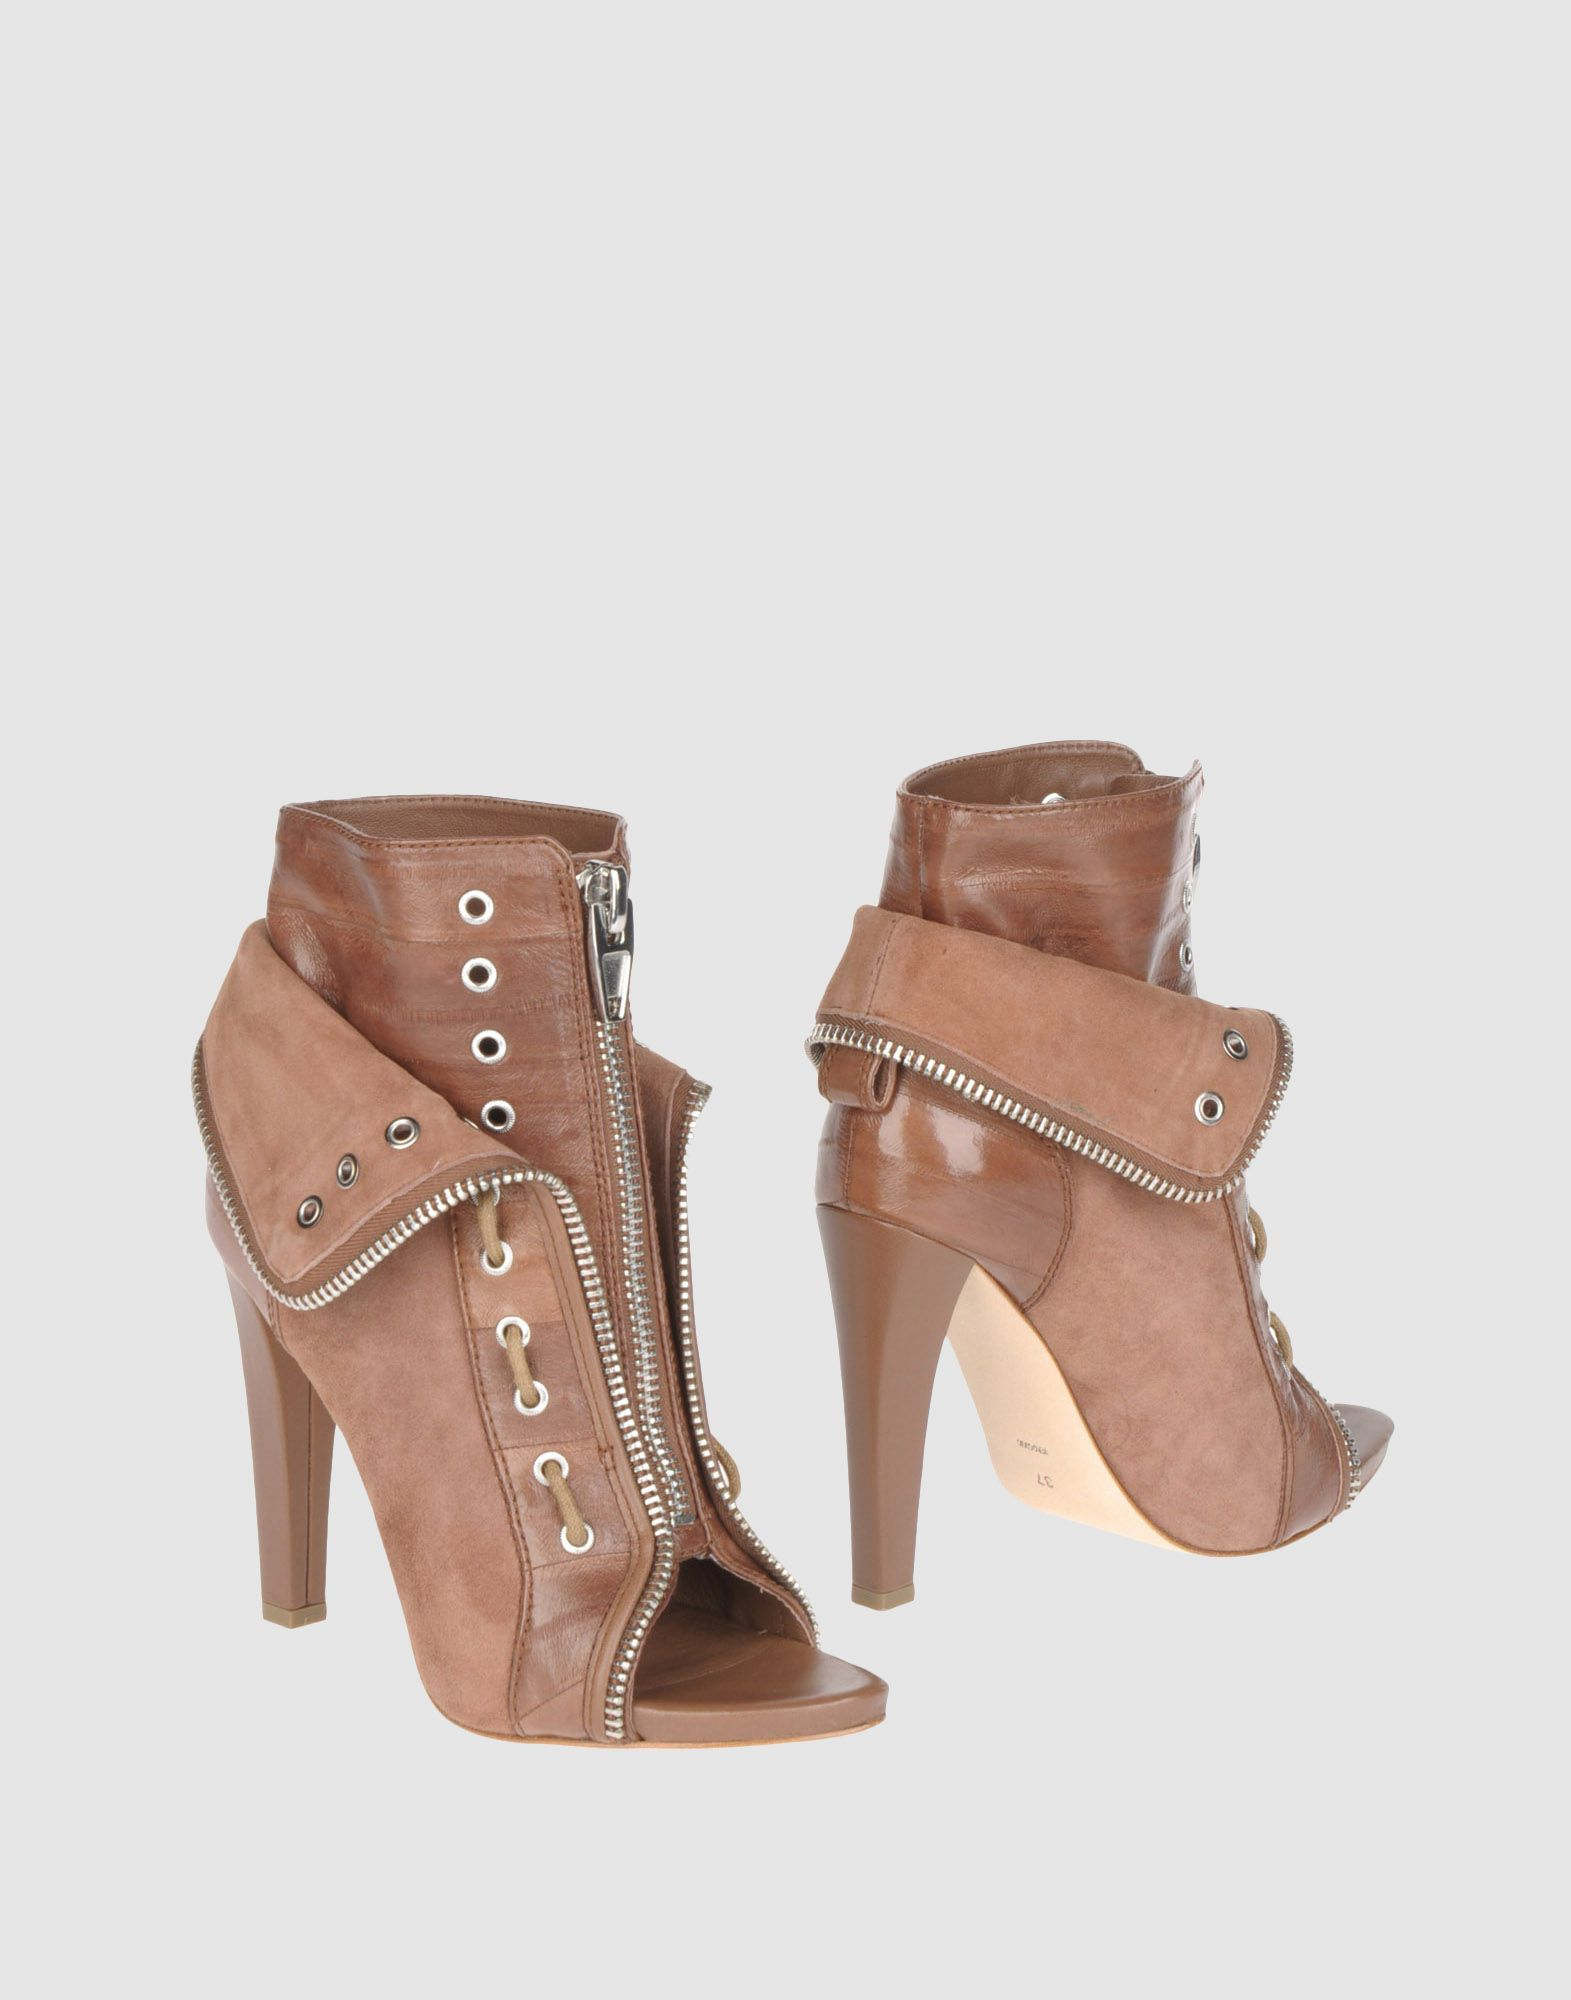 ALEXANDER WANG, Ankle boots Brown ankle boots, Boots